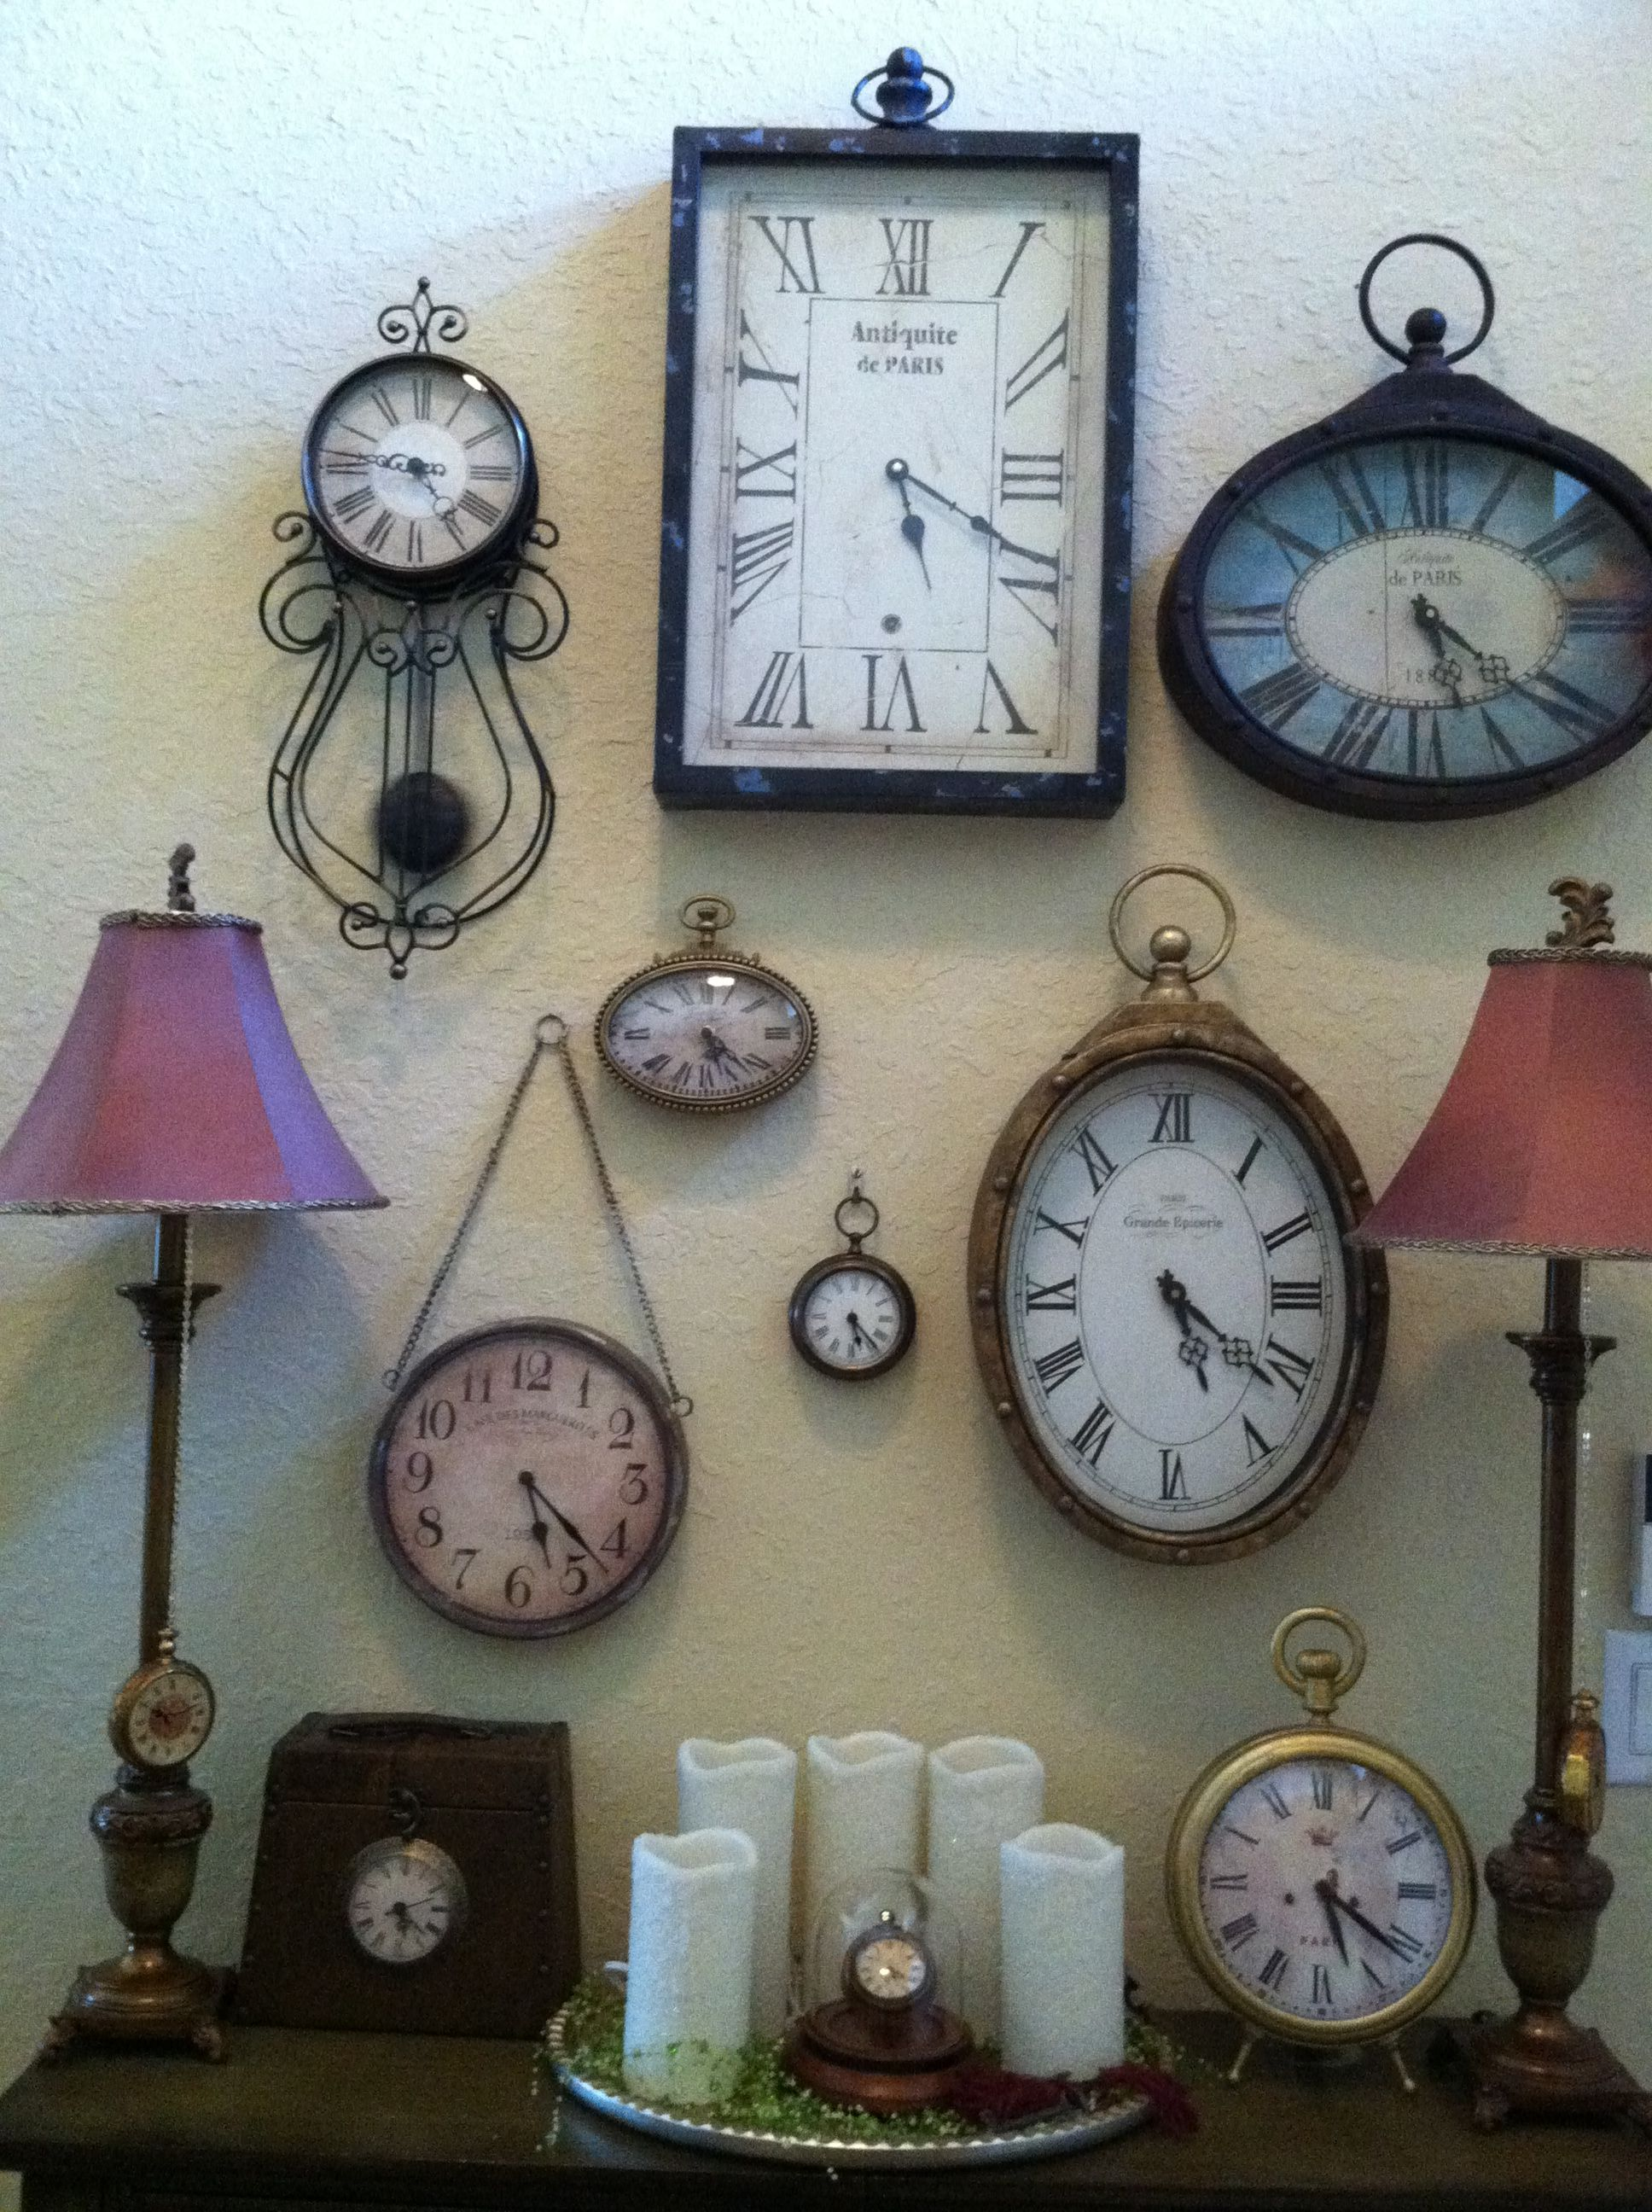 My Own Clock Display Wall In The Entrance Way Clocks Pinterest